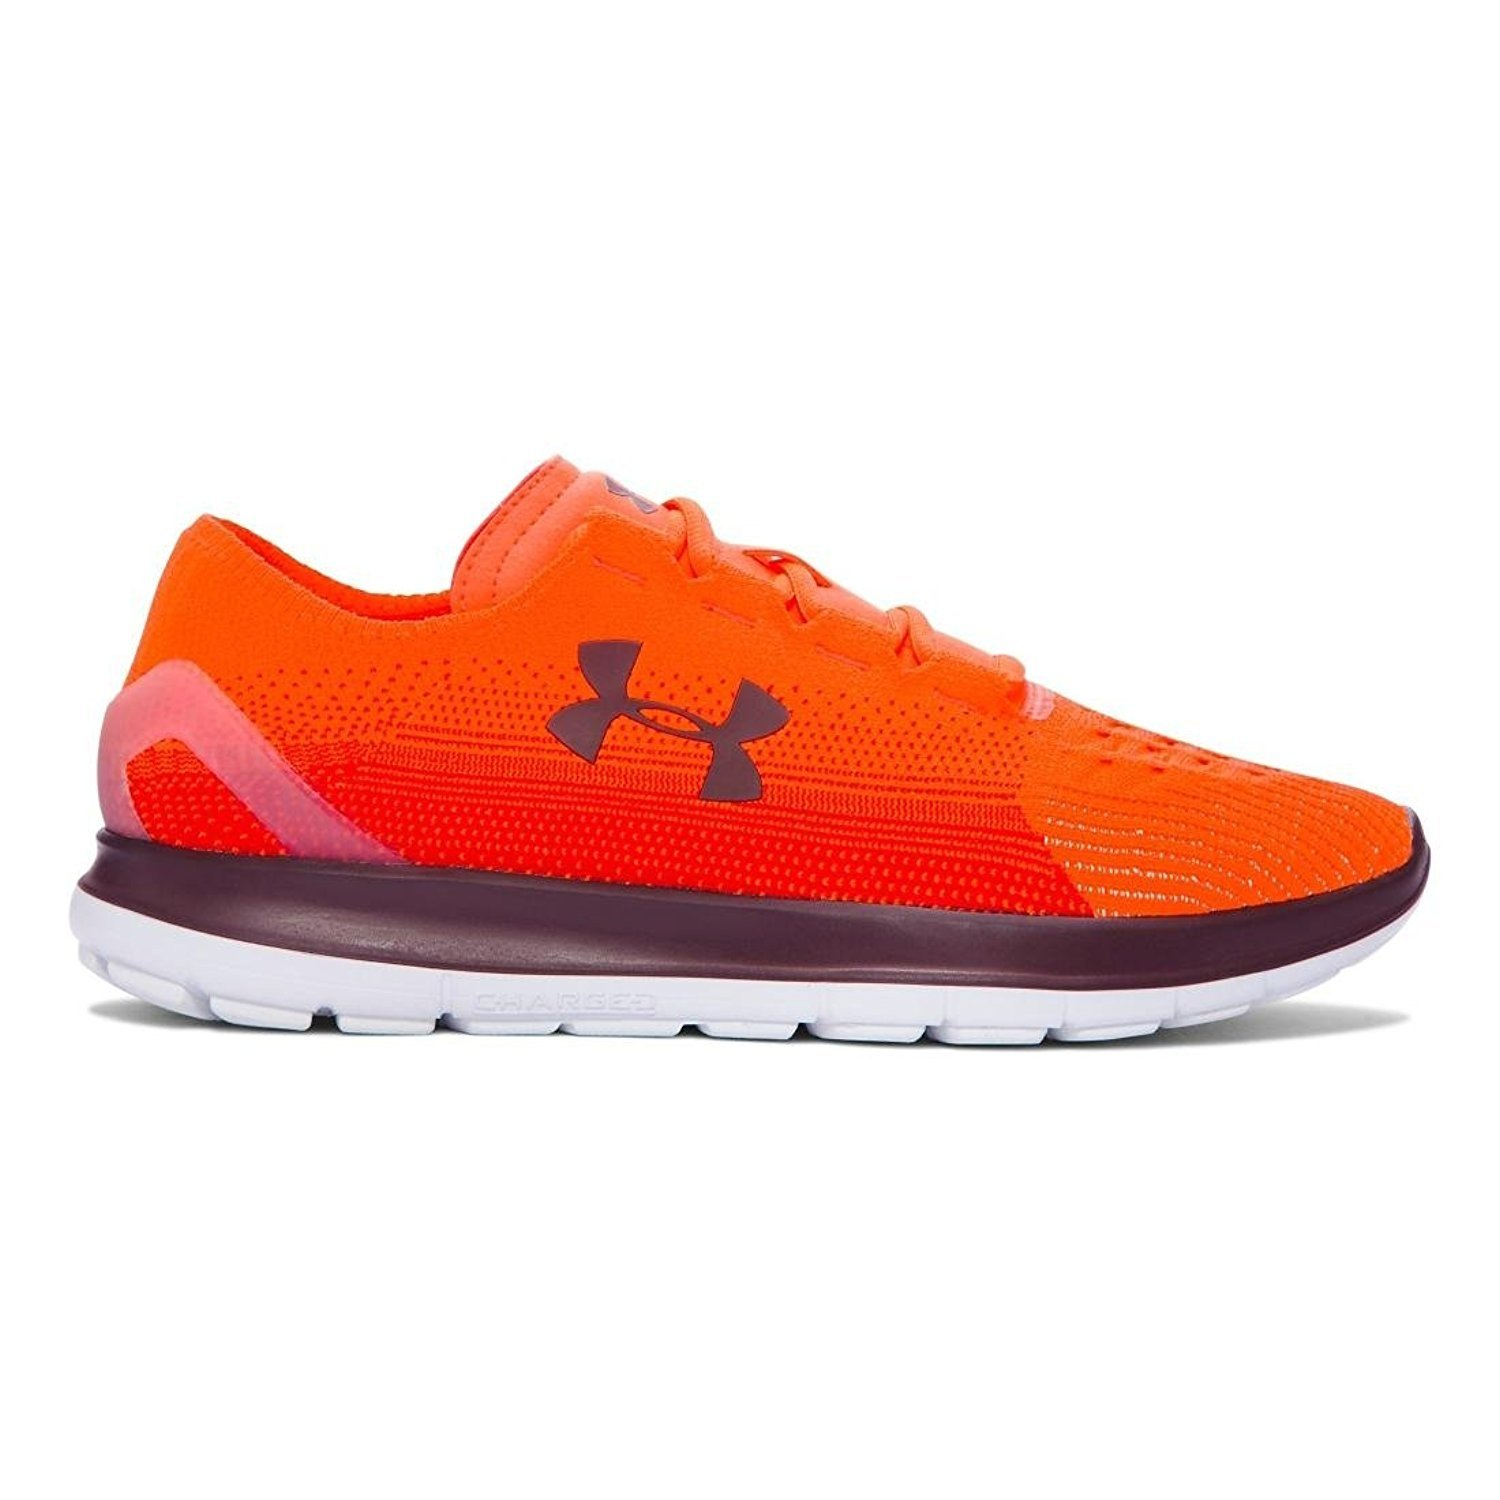 8f9ecafe1e9 Under Armour Men s Speedform Slingride Fade Running Shoes